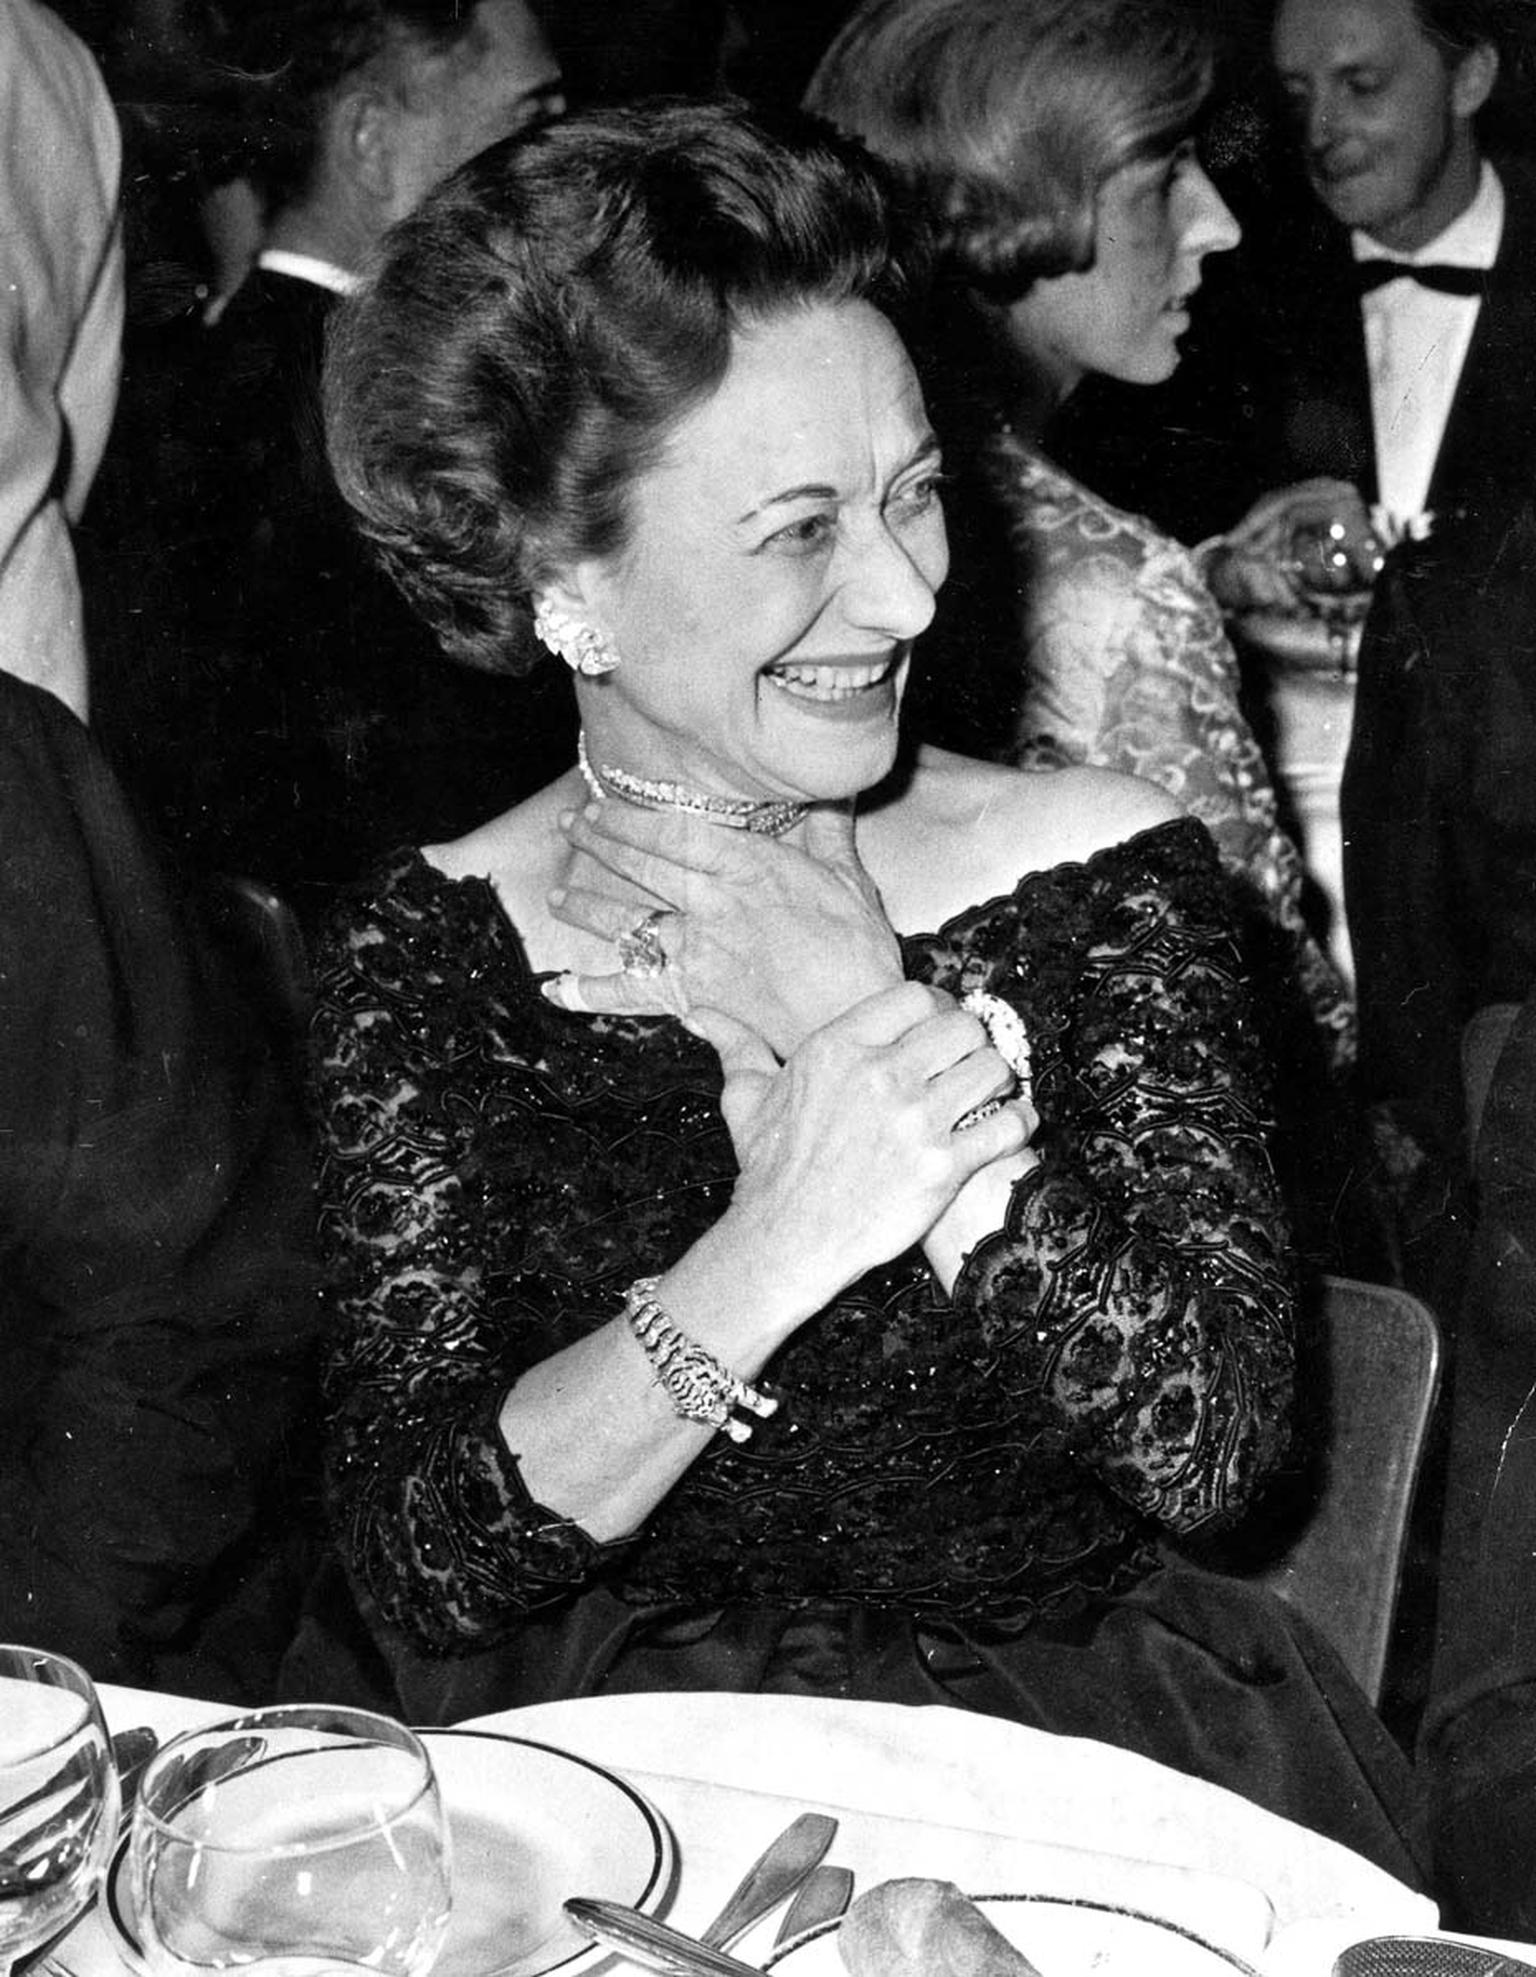 The Duchess of Windsor wearing the Cartier Tiger bracelet during the 1959 Gala opening of the new Lido Revue in Paris. ©Getty Images/Popperfoto.